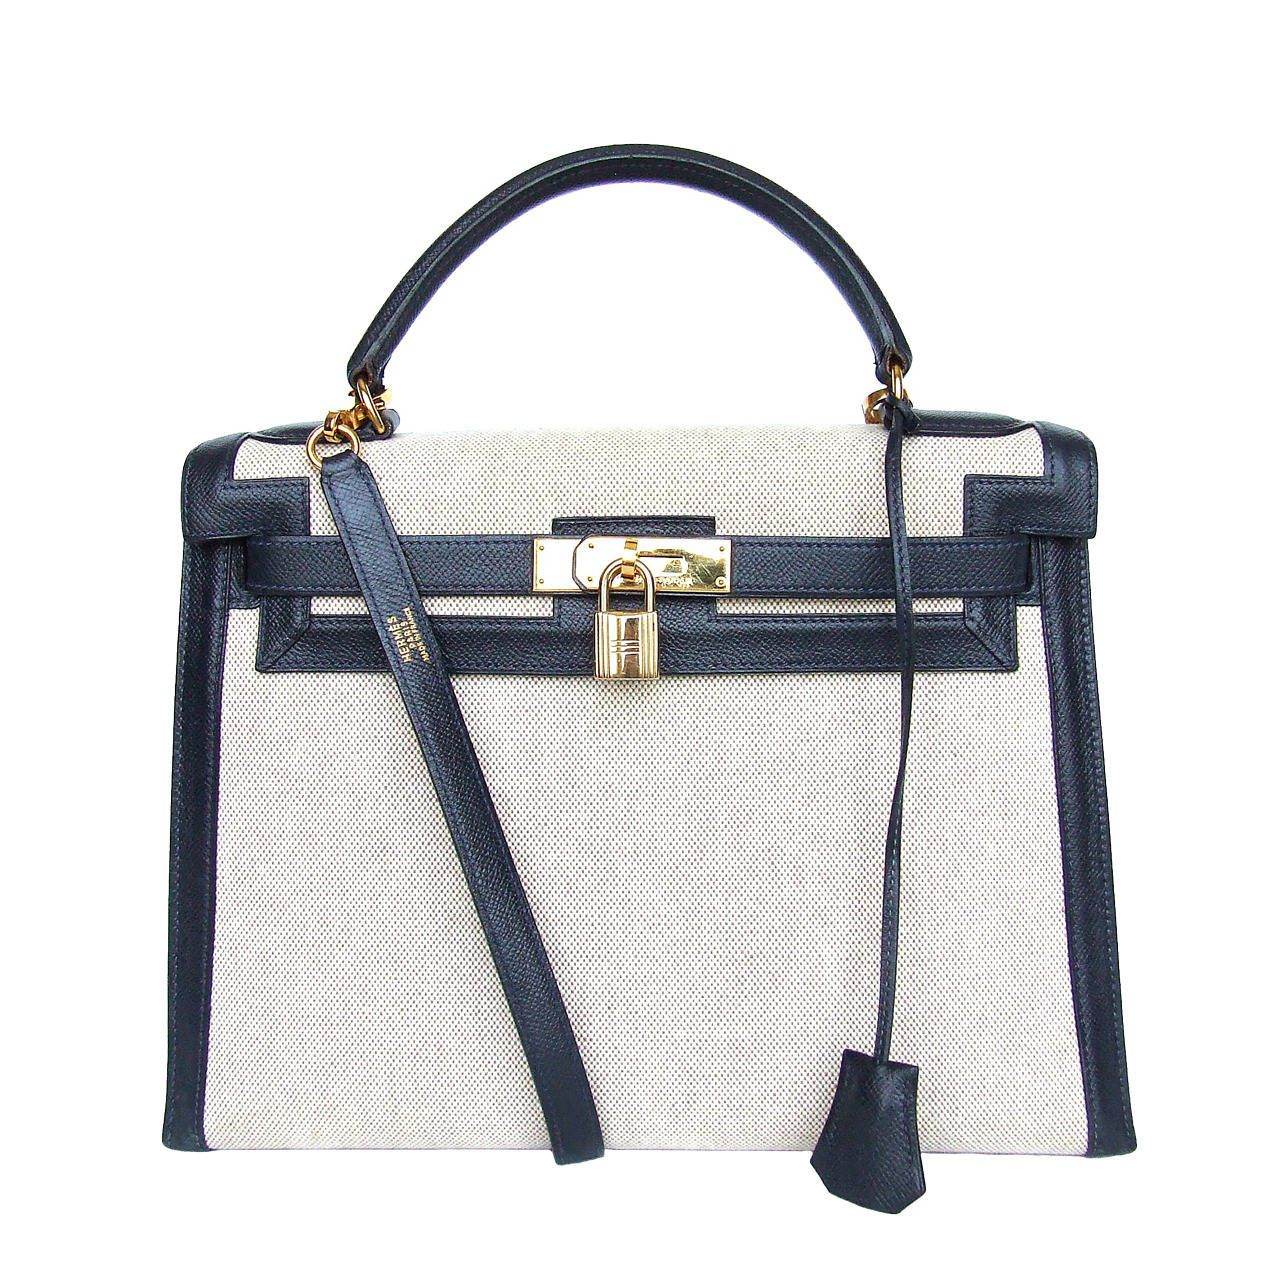 cdbae0a1d98c Authentic Hermes Kelly 32 Bag Sellier Bi Matiere Canvas Leather Gold ...